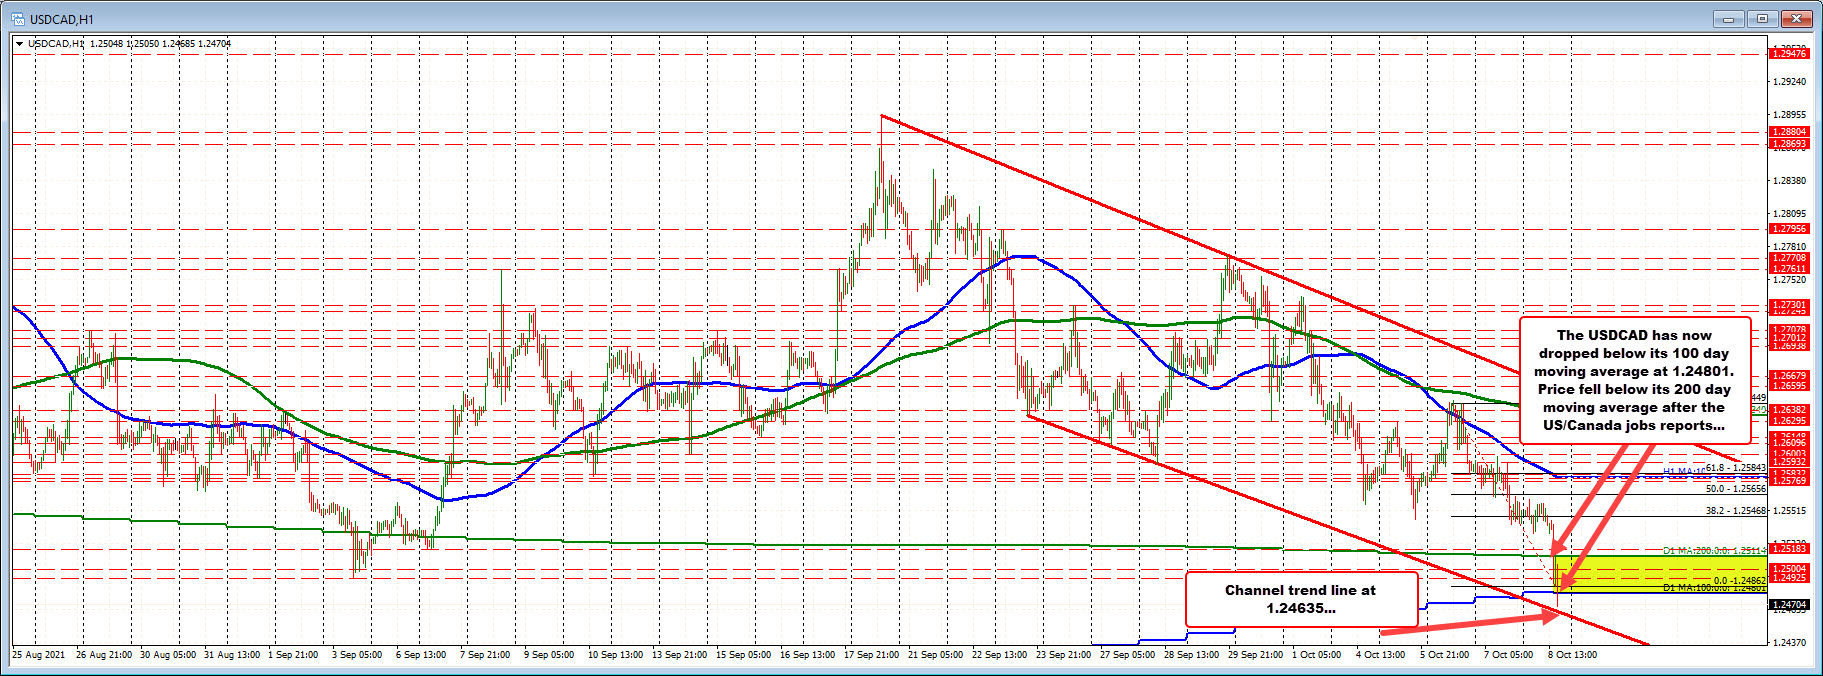 USDCAD drops below the 100 day MA